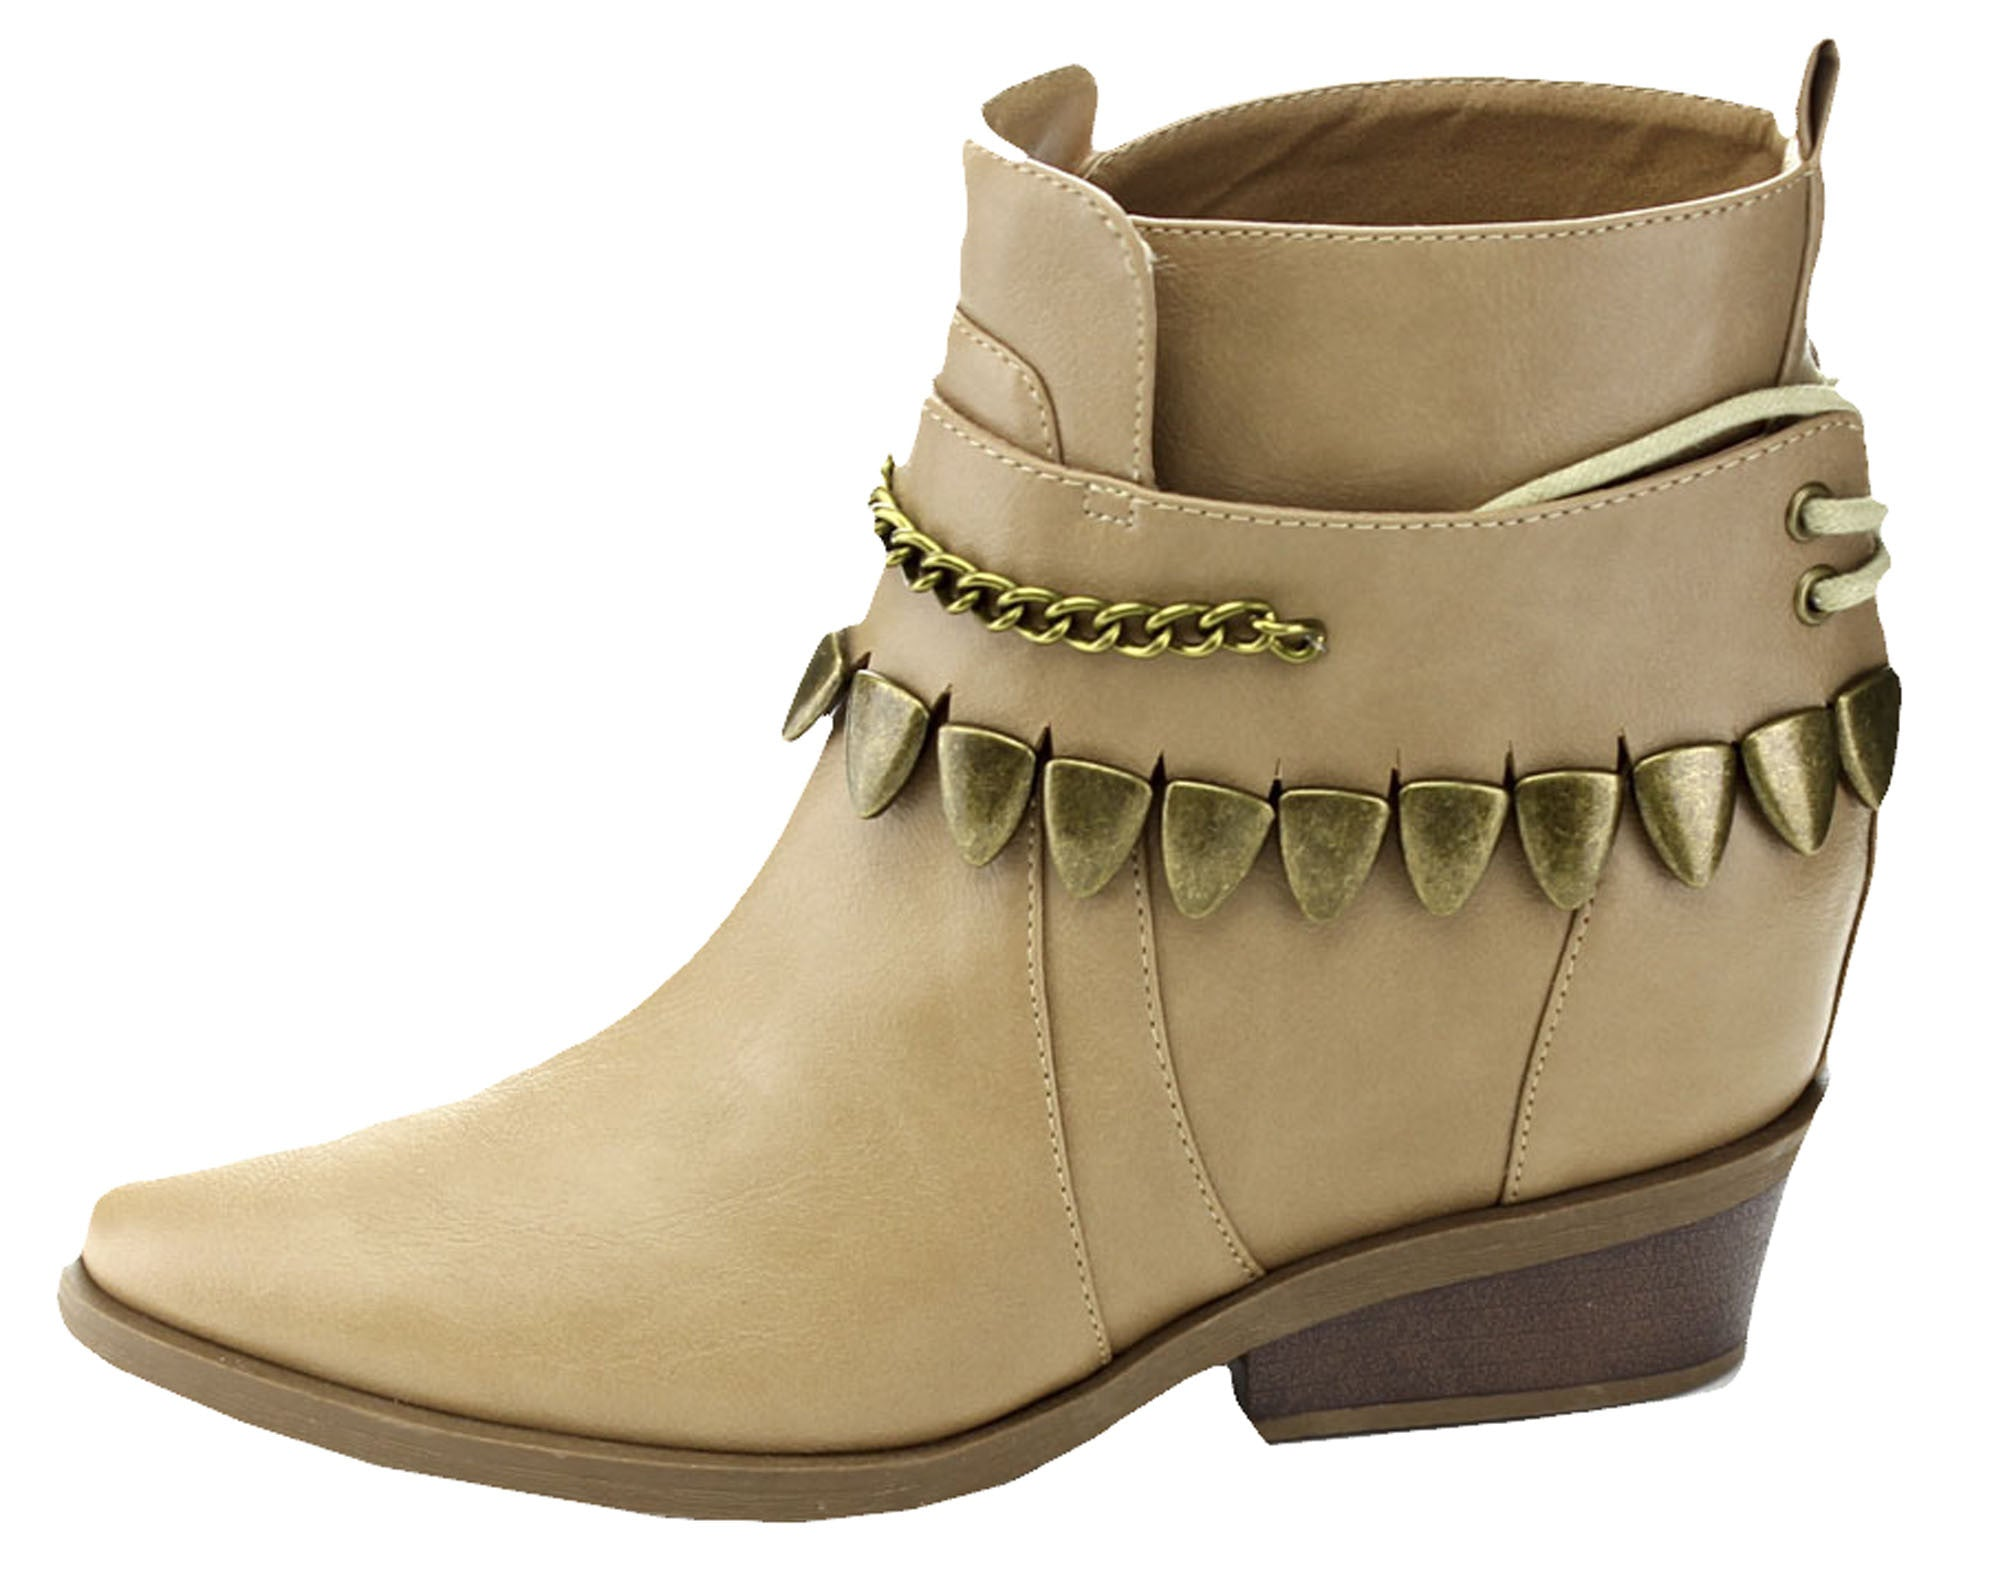 Bumper Pamee05 Womens Ankle Boots (Nude Brown),Boots,Bumper - Discount Divas